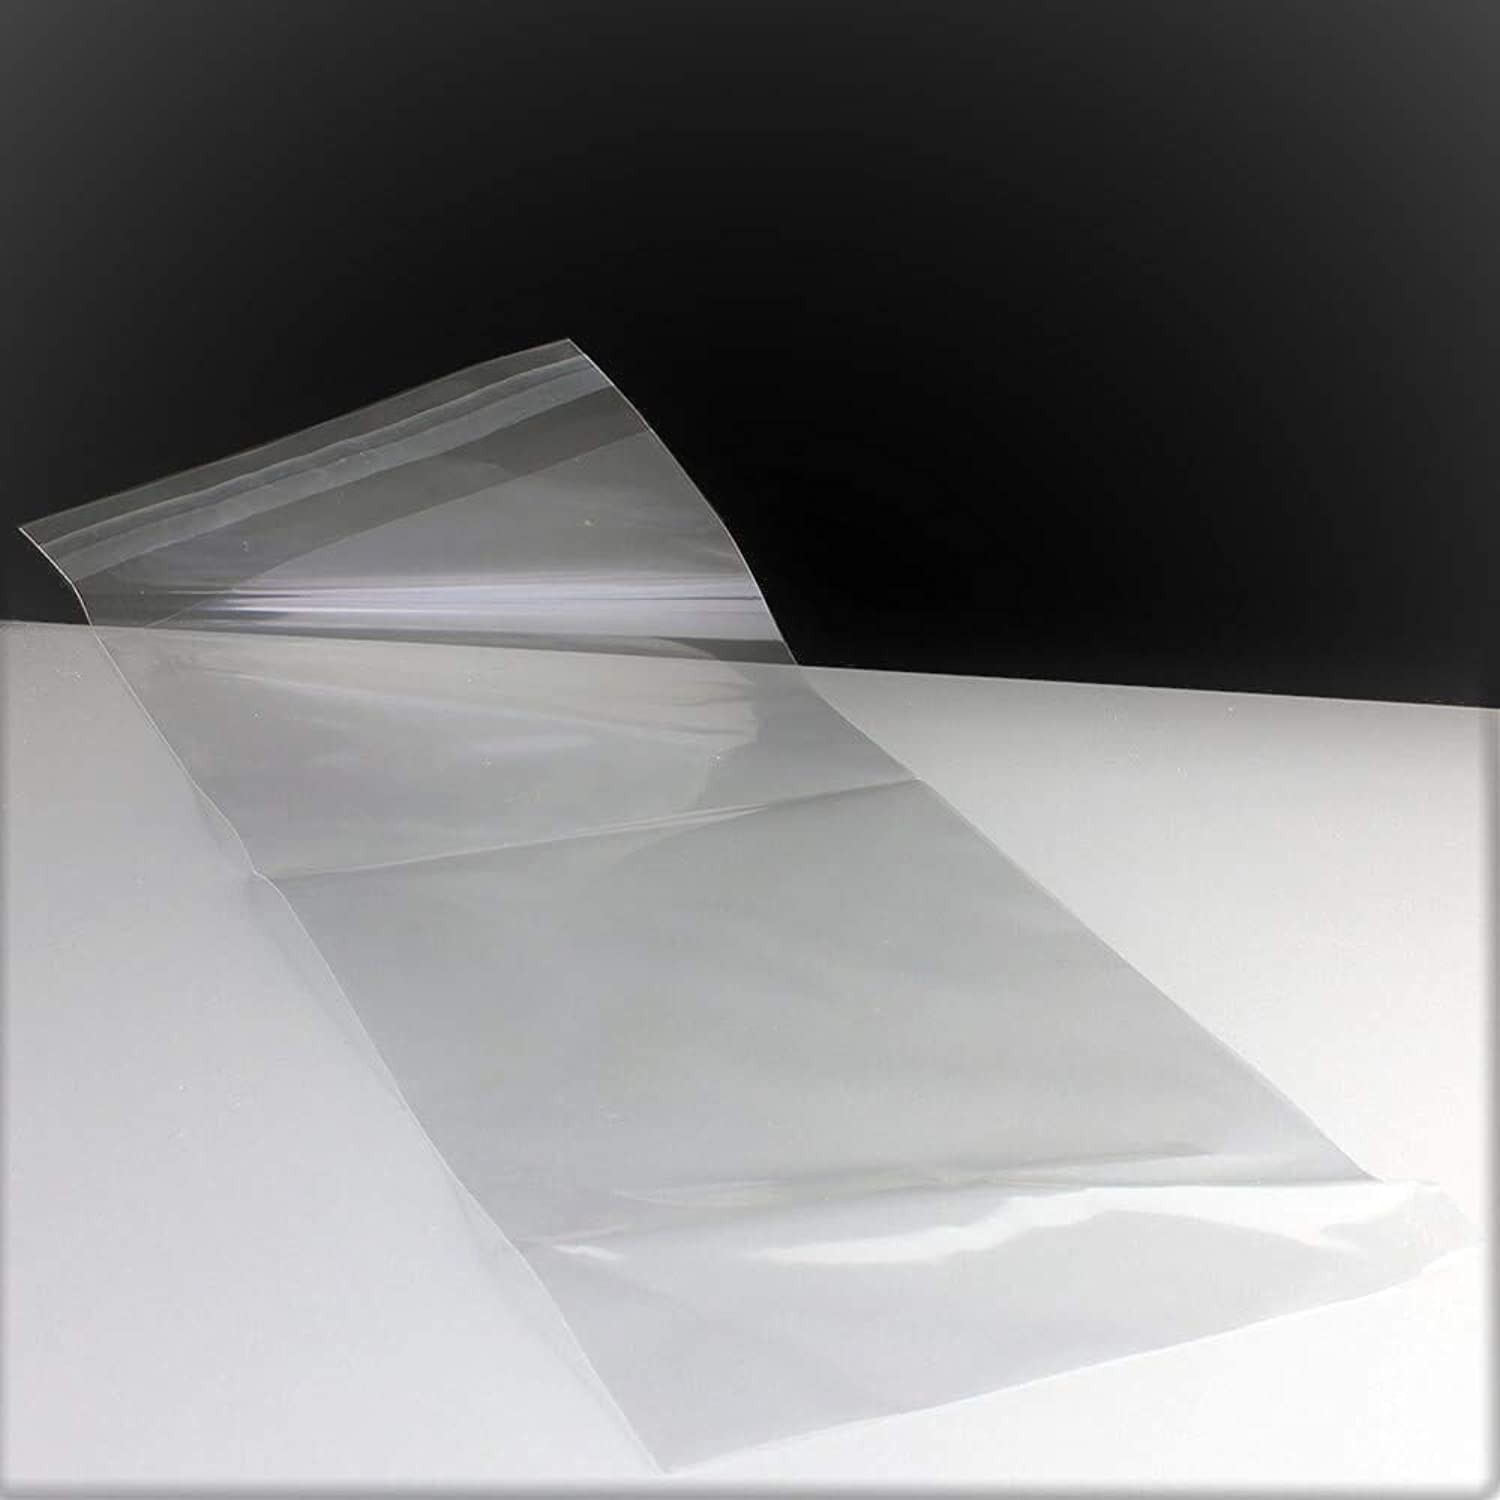 Clear Cellophane Bags SelfAdhesive Sealing Treat Bags OPP Plastic Bag for Candy, Soap, Cookie, Valentine 150x350mm 6x14  (2000)